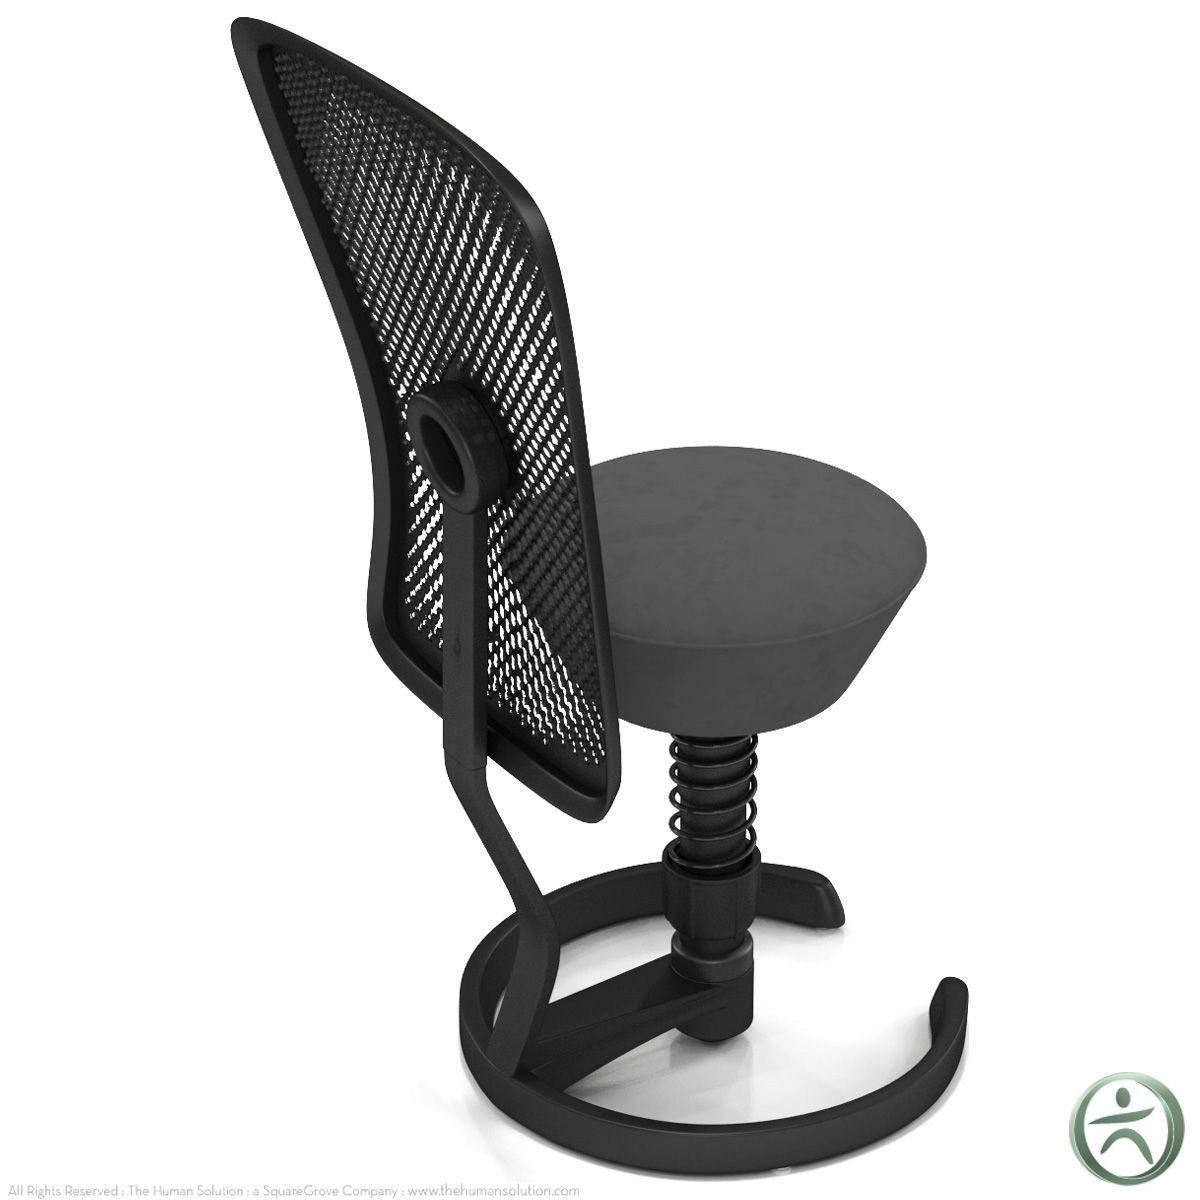 Swopper Chair - Design Your Own | Shop Swopper Chairs